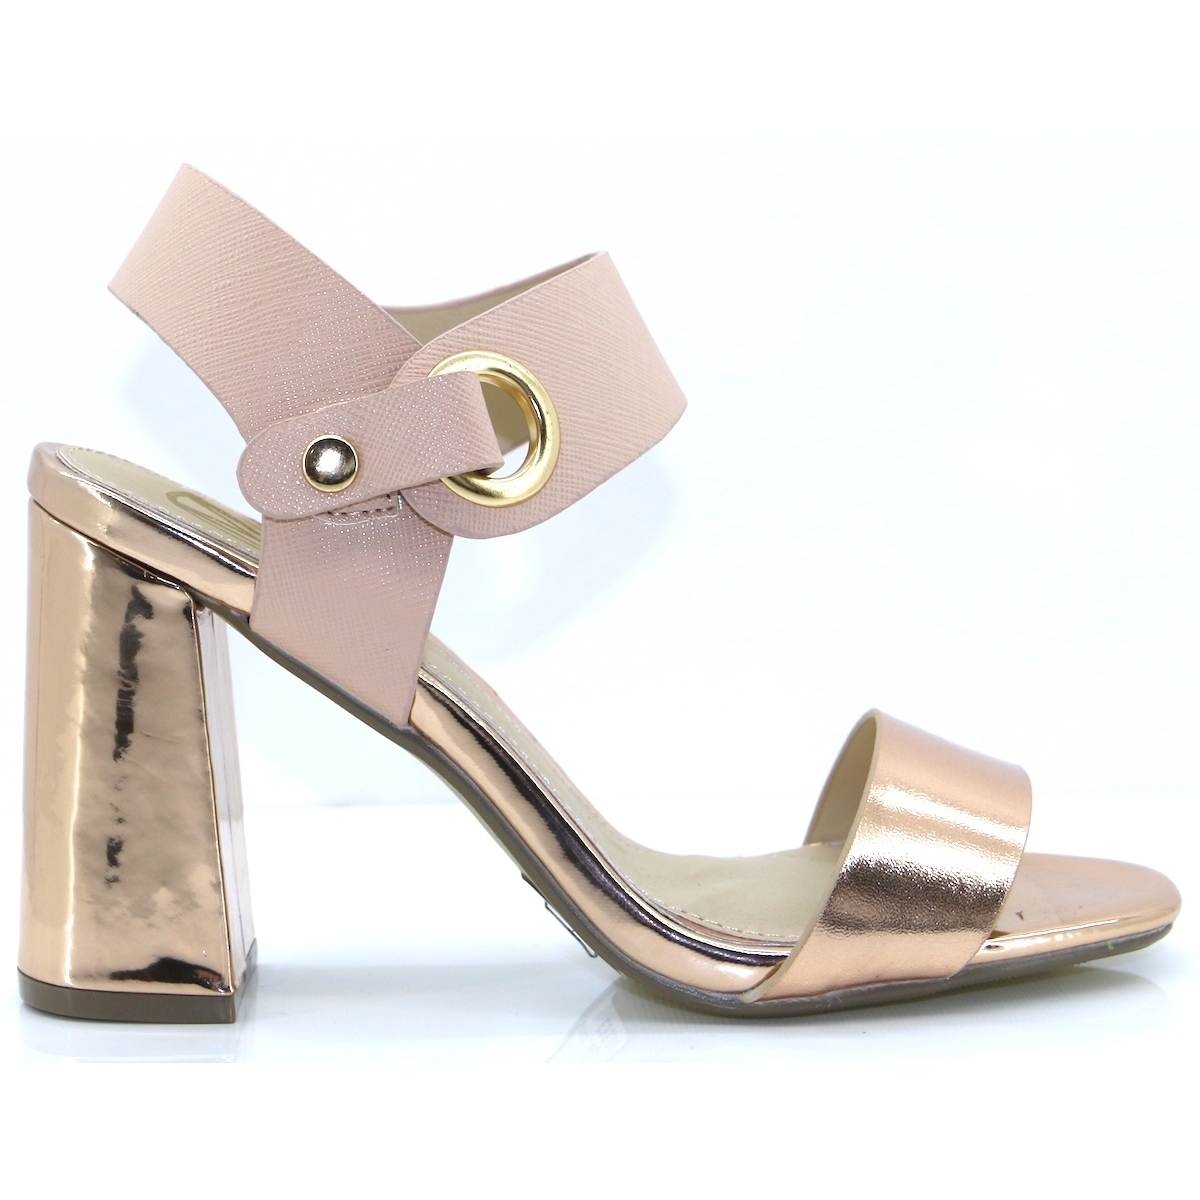 2a4c0ba1a9 Enter Email Address. Marla - MILLIE & CO NUDE AND ROSE GOLD HEELS